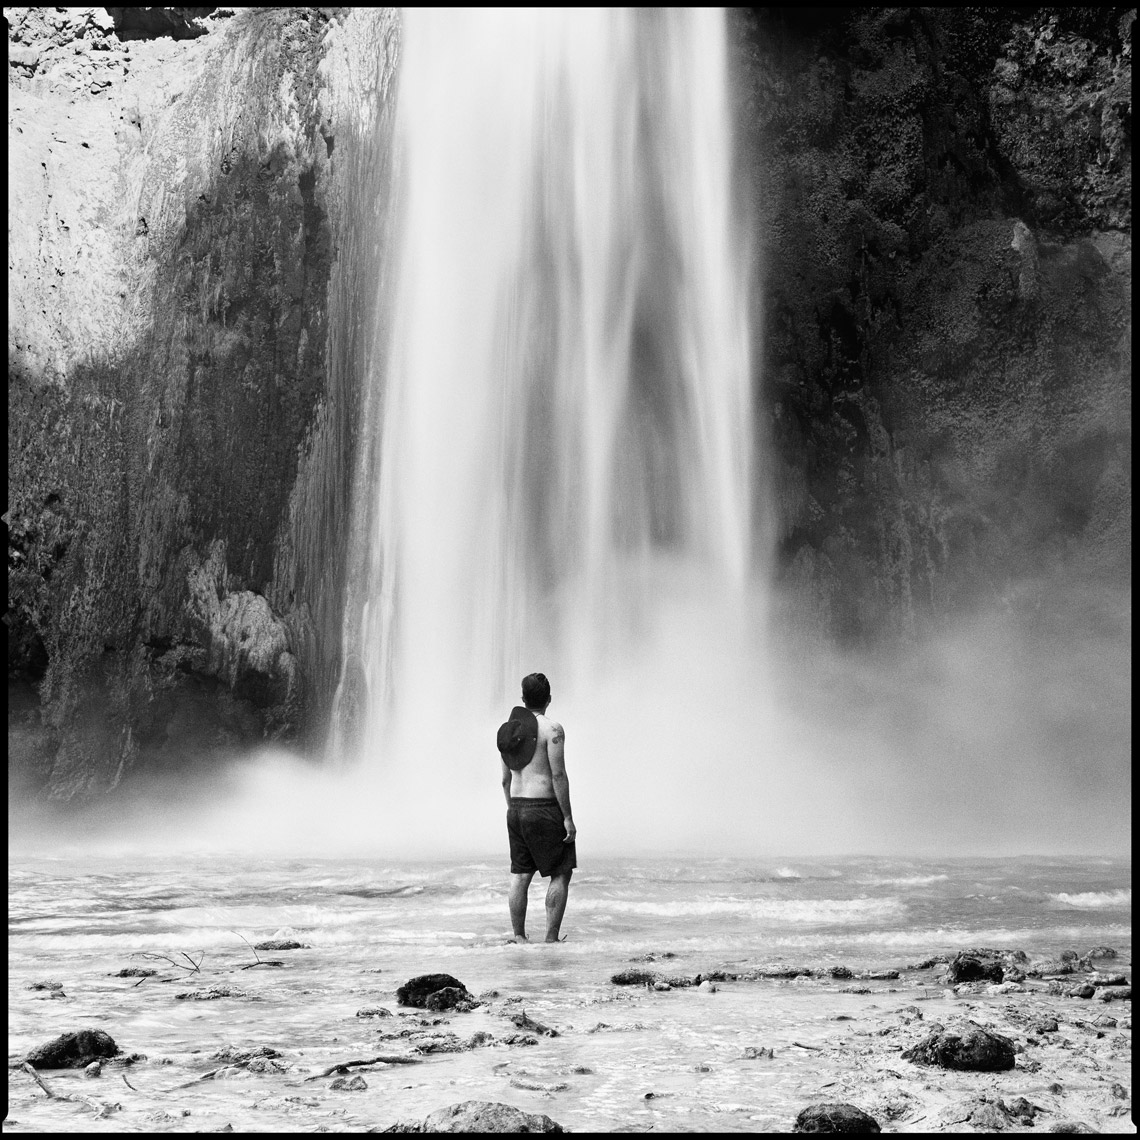 Mooney Falls - Havasupai, Arizona - Stephen Denton Photography - Phoenix AZ Commercial Photographer